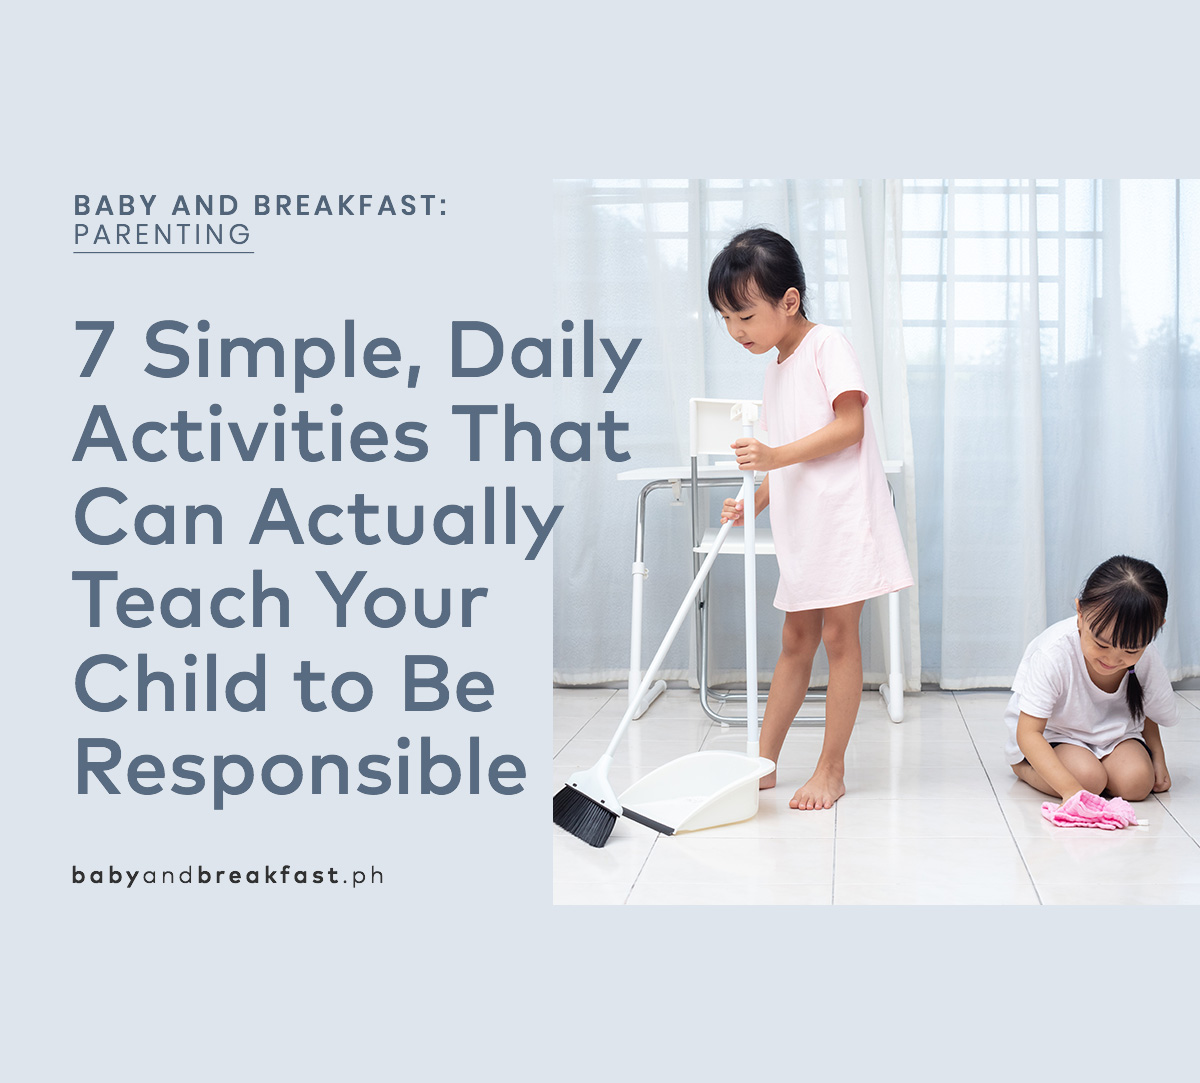 Baby and Breakfast: Parenting 7 Simple, Daily Activities That Can Actually Teach Your Child to Be Responsible